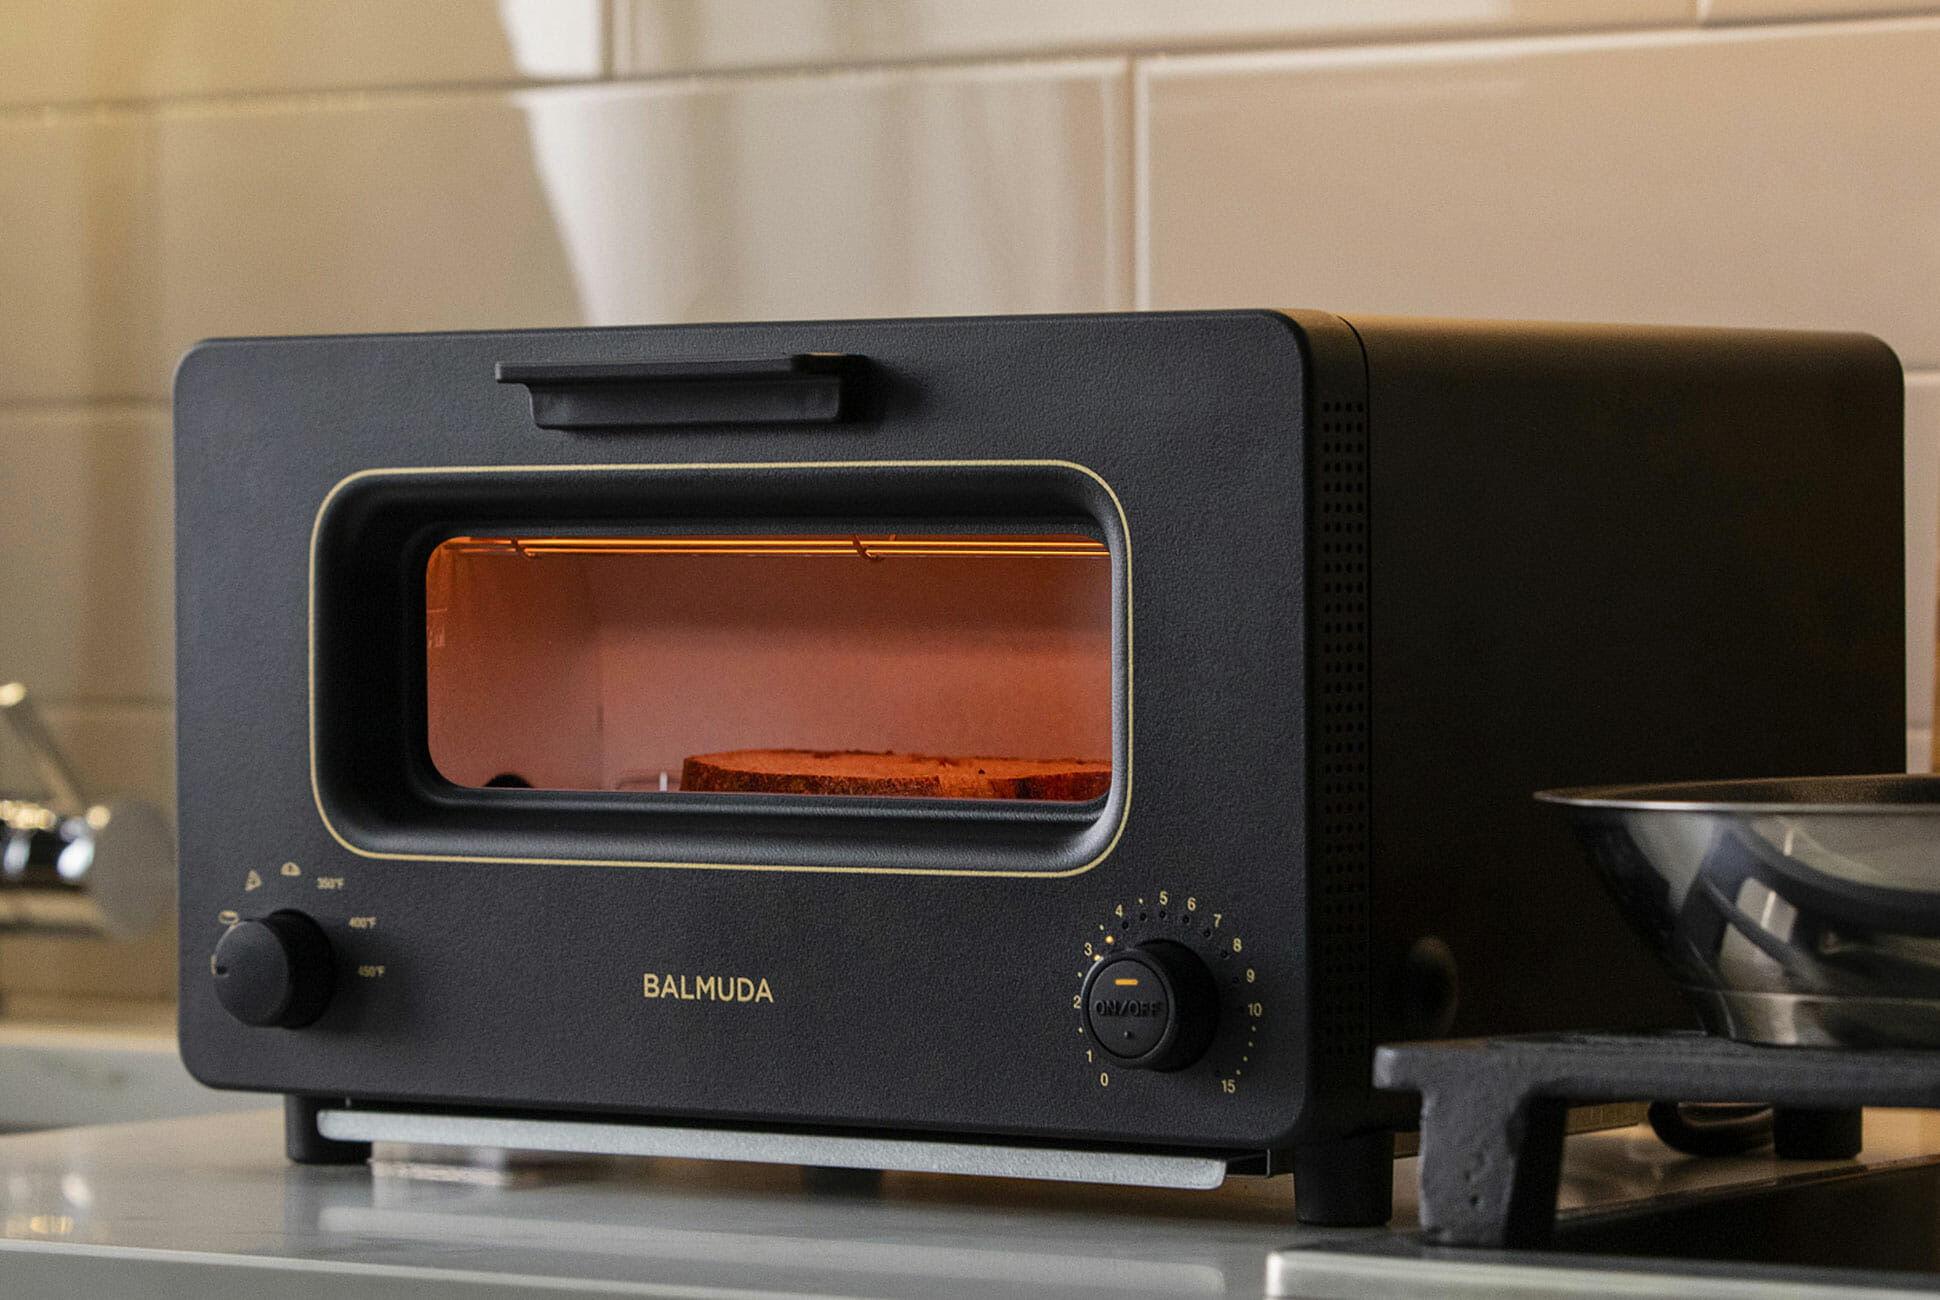 The Balmuda Toaster Elevates Your Morning Meal at werd.com